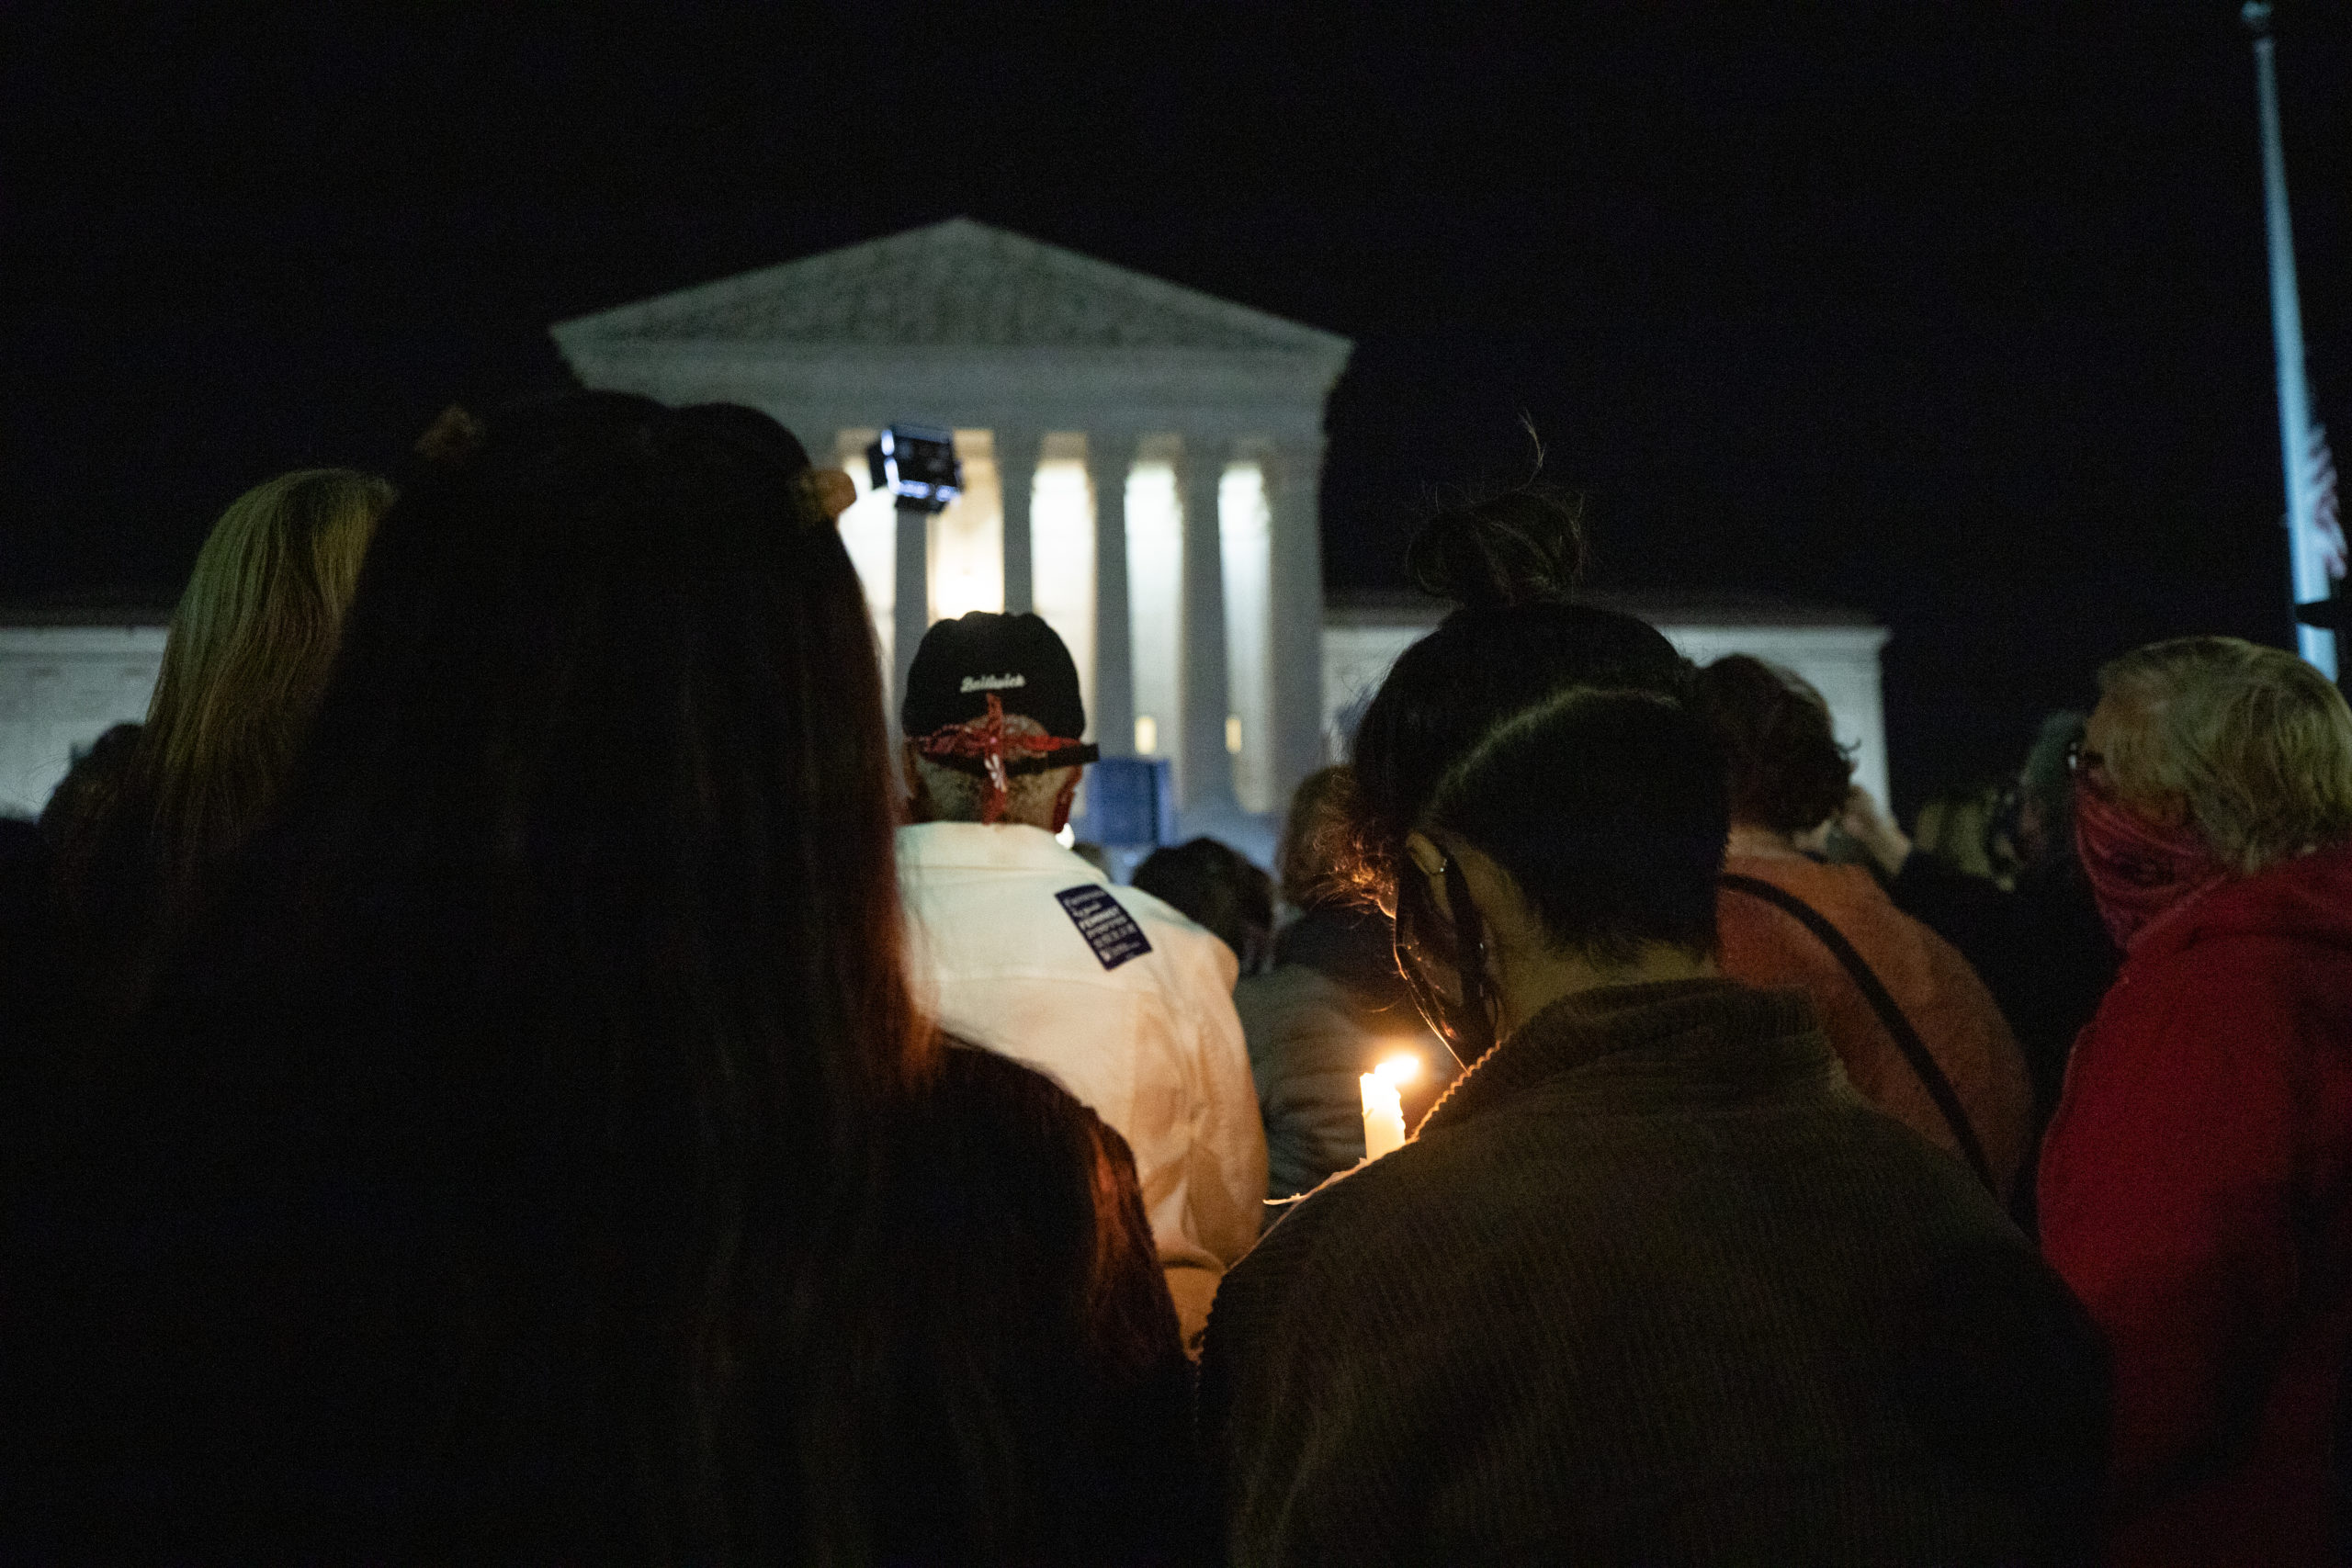 Many held lit candles outside the Supreme Court at a memorial honoring the late Justice Ruth Bader Ginsburg on Sept. 19, 2020. (Photo: Kaylee Greenlee / The DCNF)